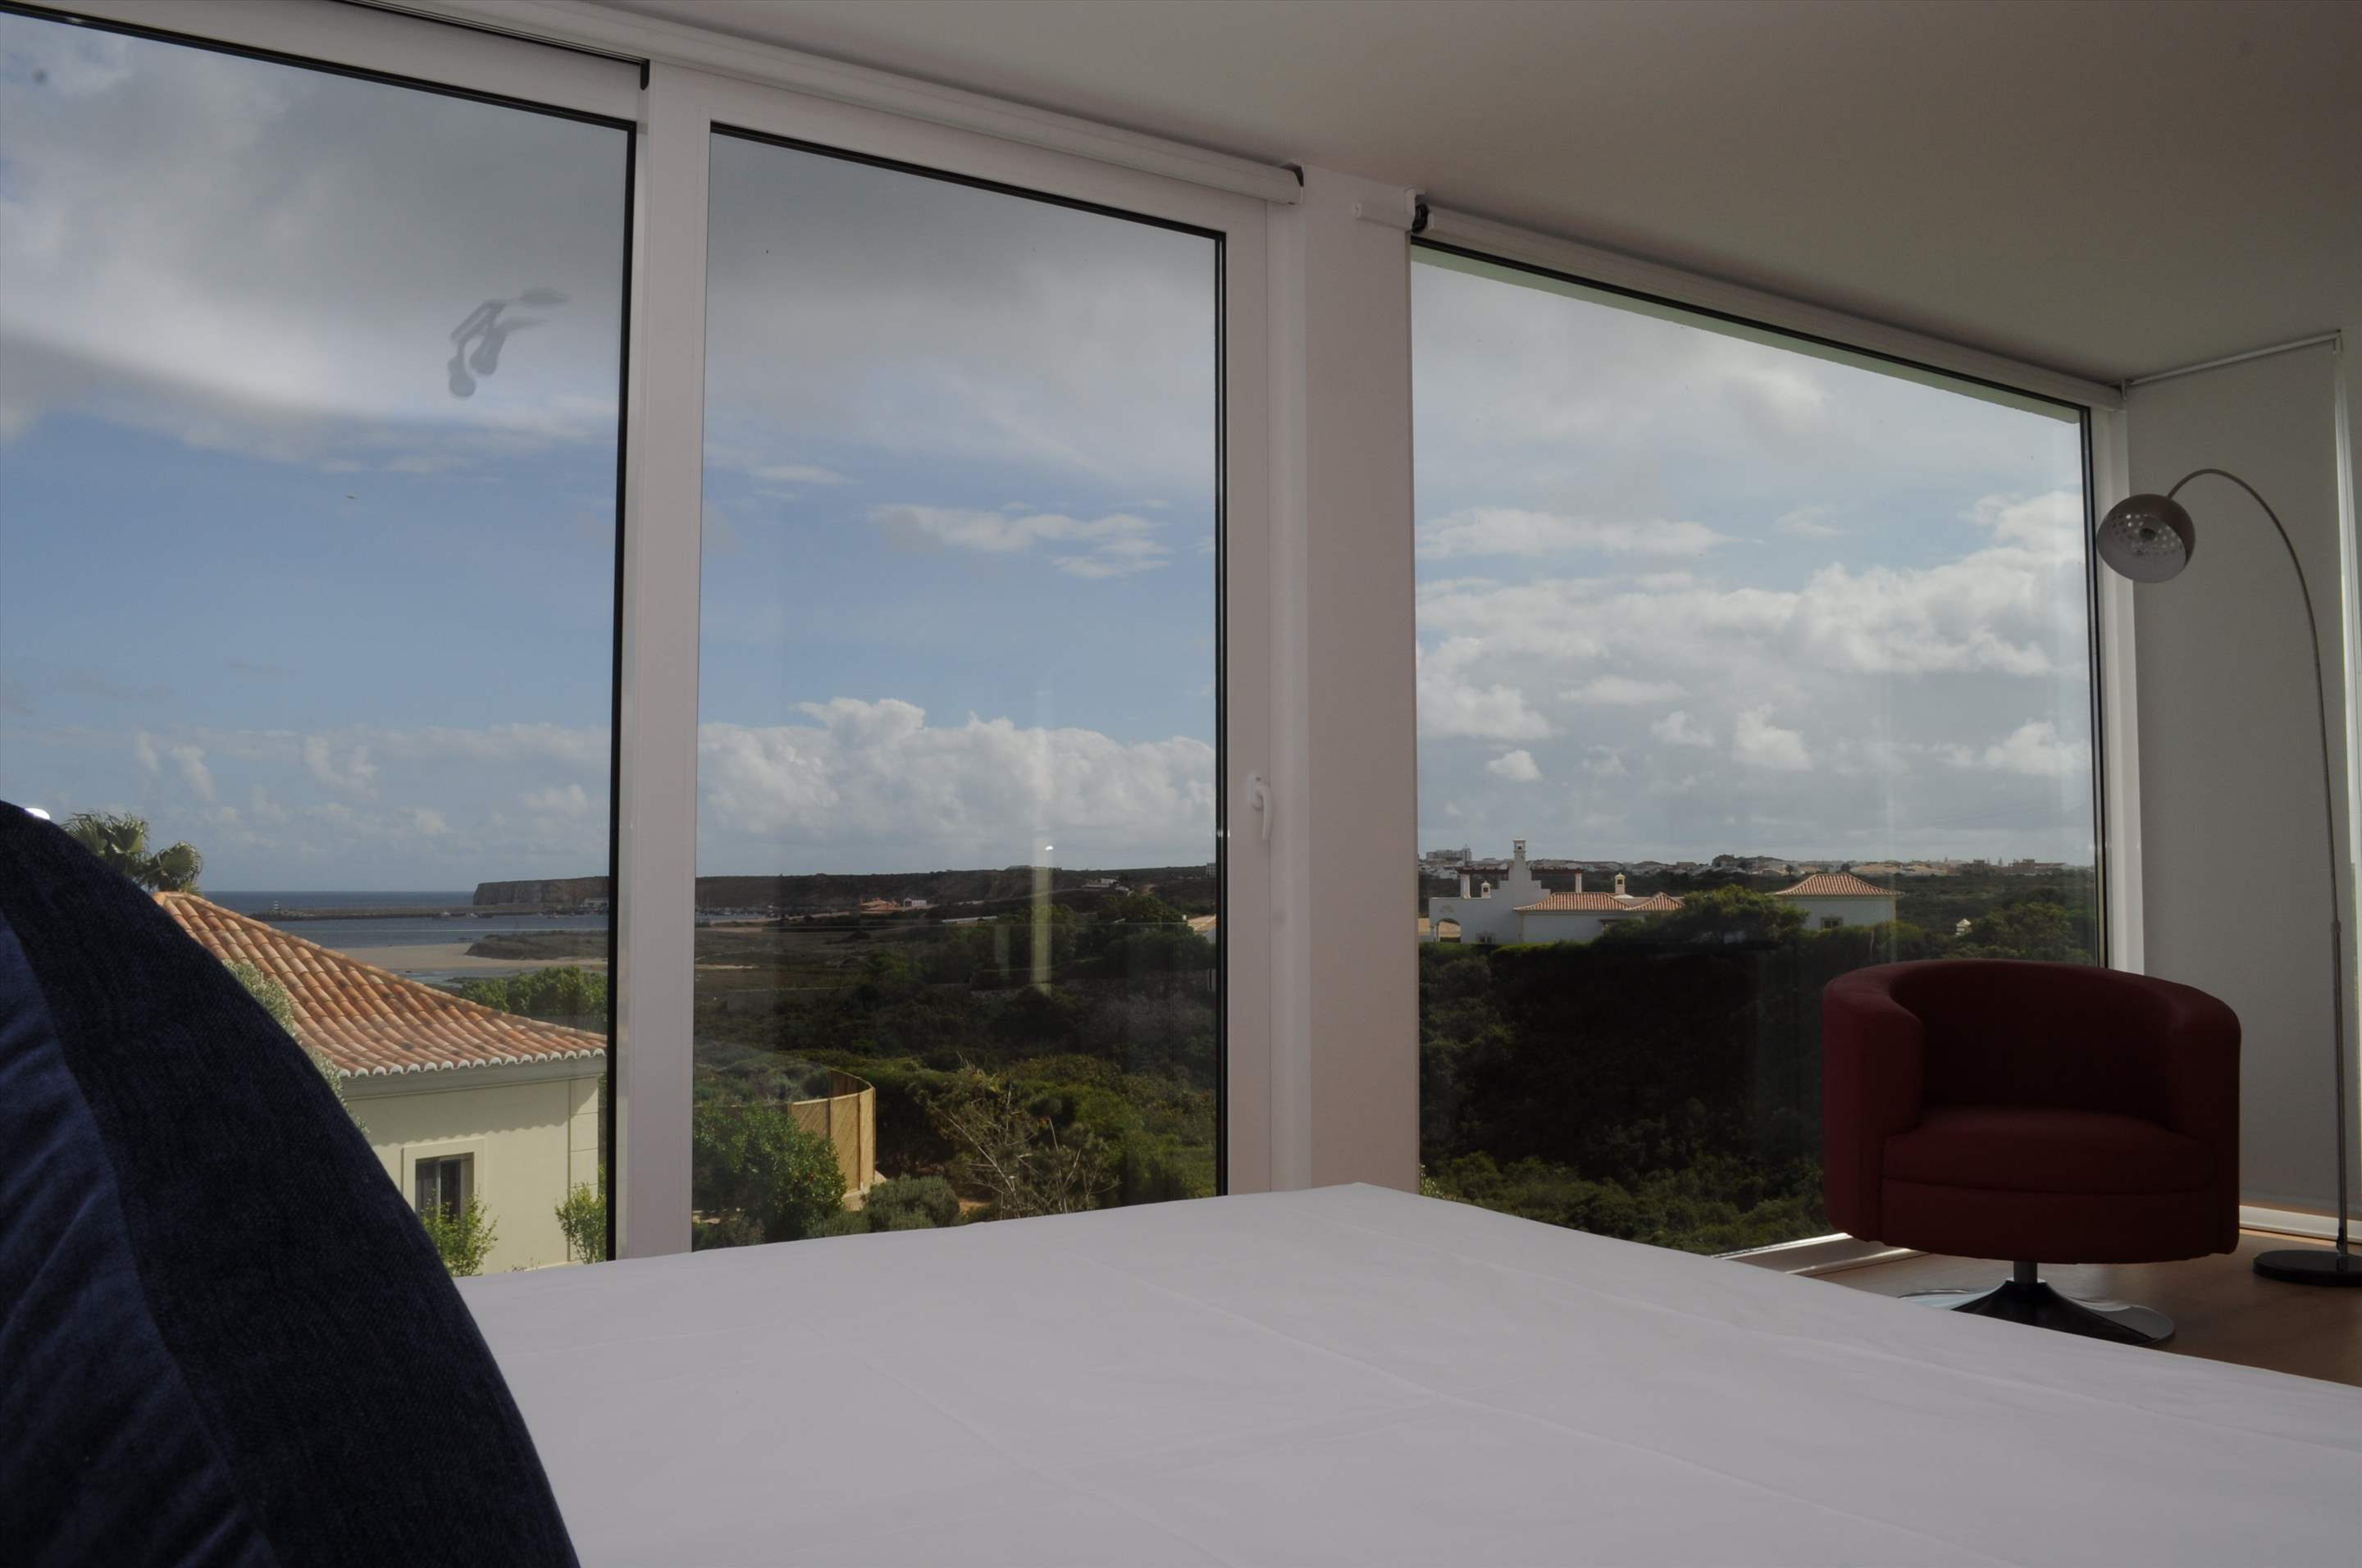 Martinhal Luxury Villa No.6, 3 bedroom villa in Martinhal Sagres, Algarve Photo #10